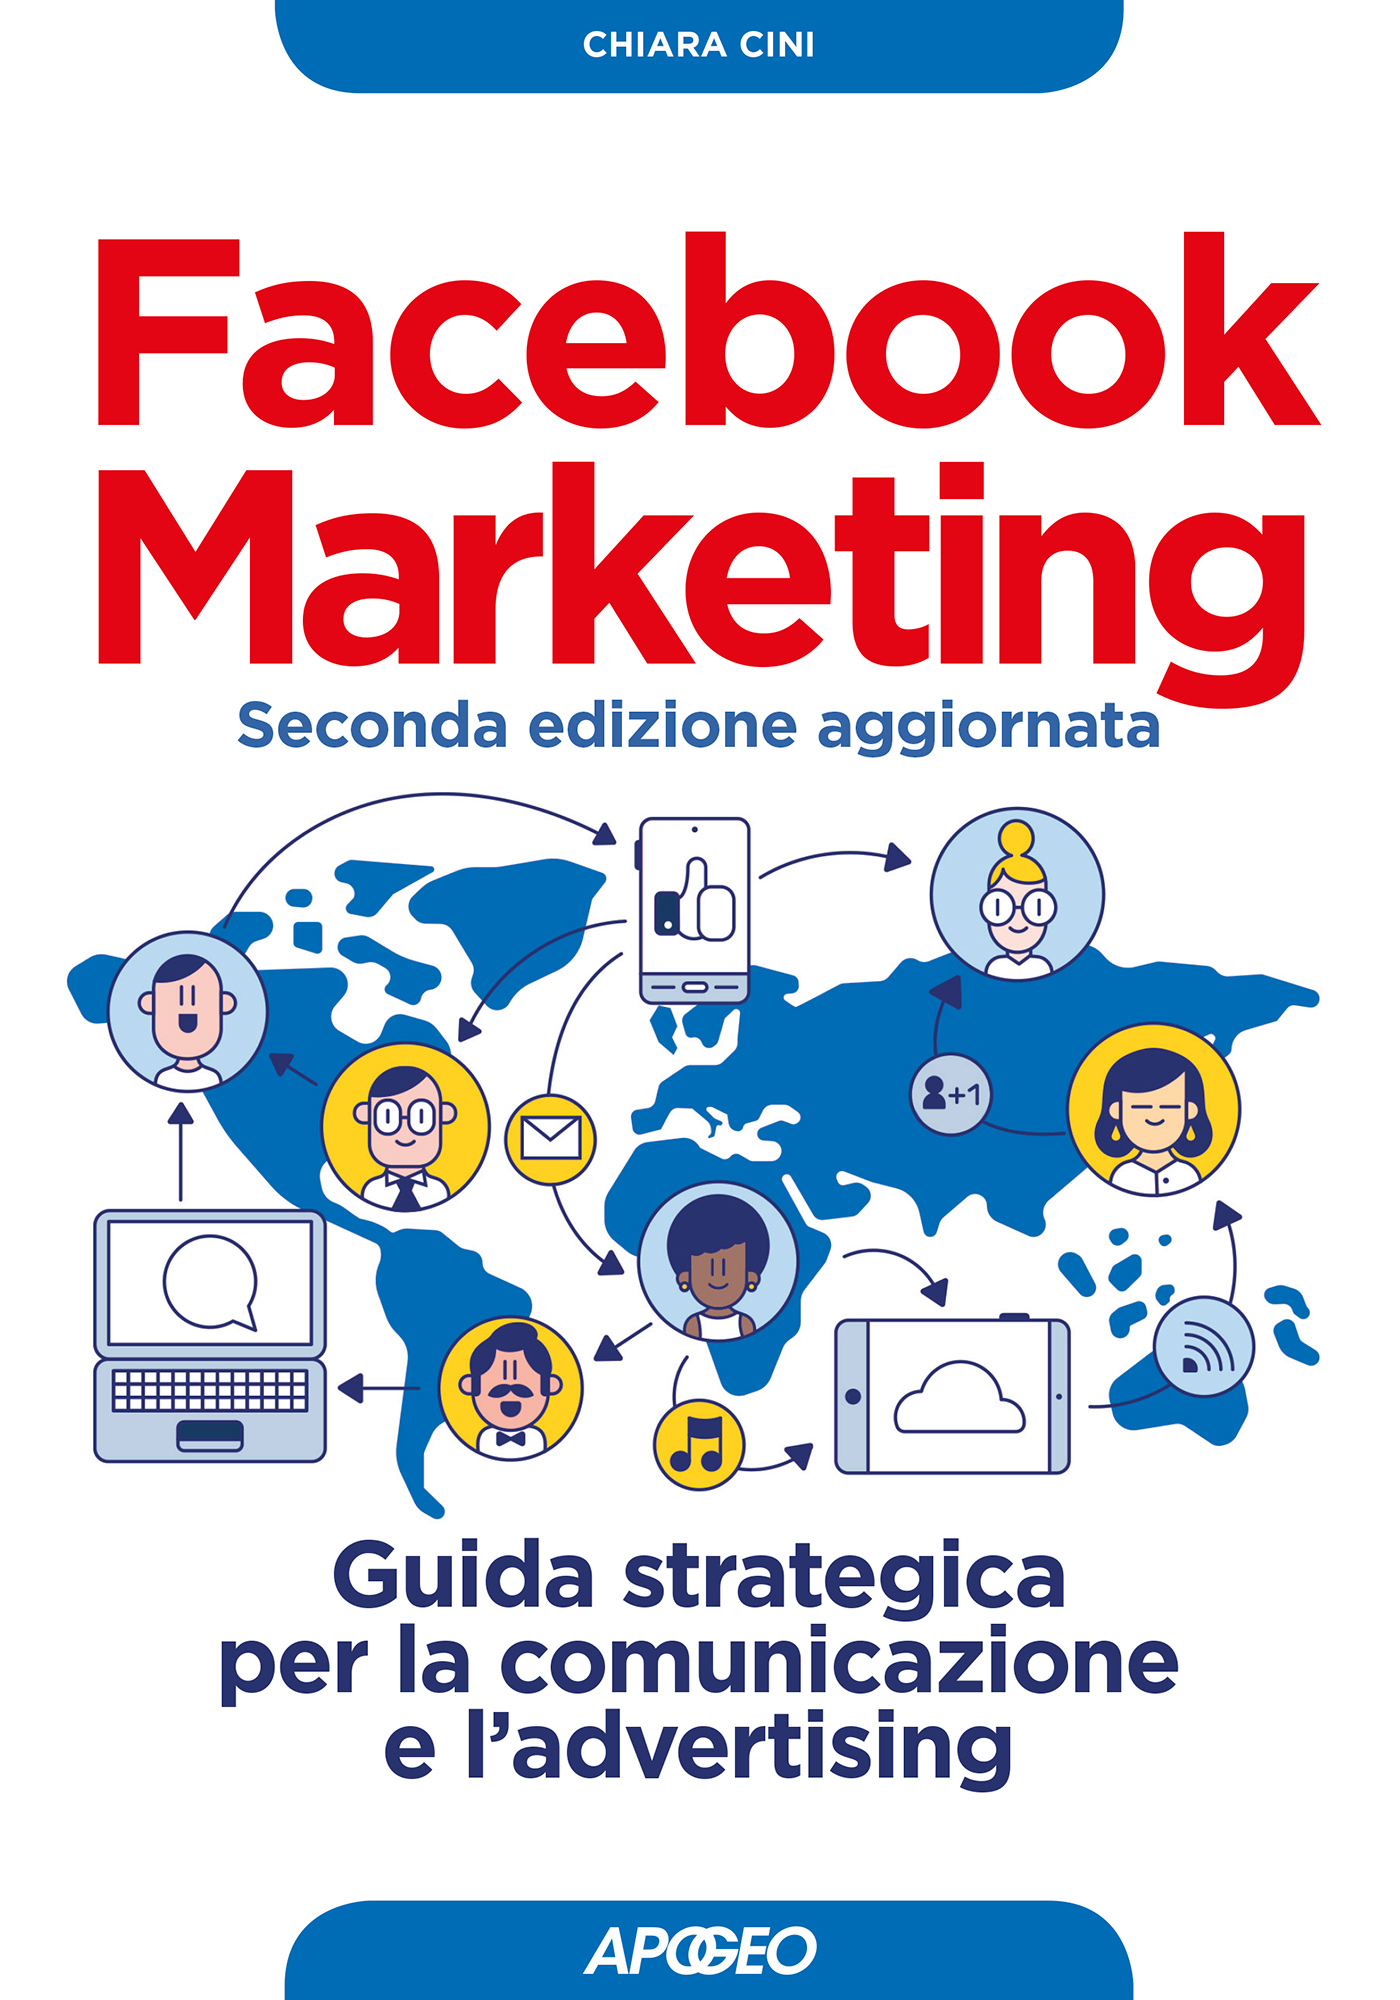 Facebook Marketing seconda edizione